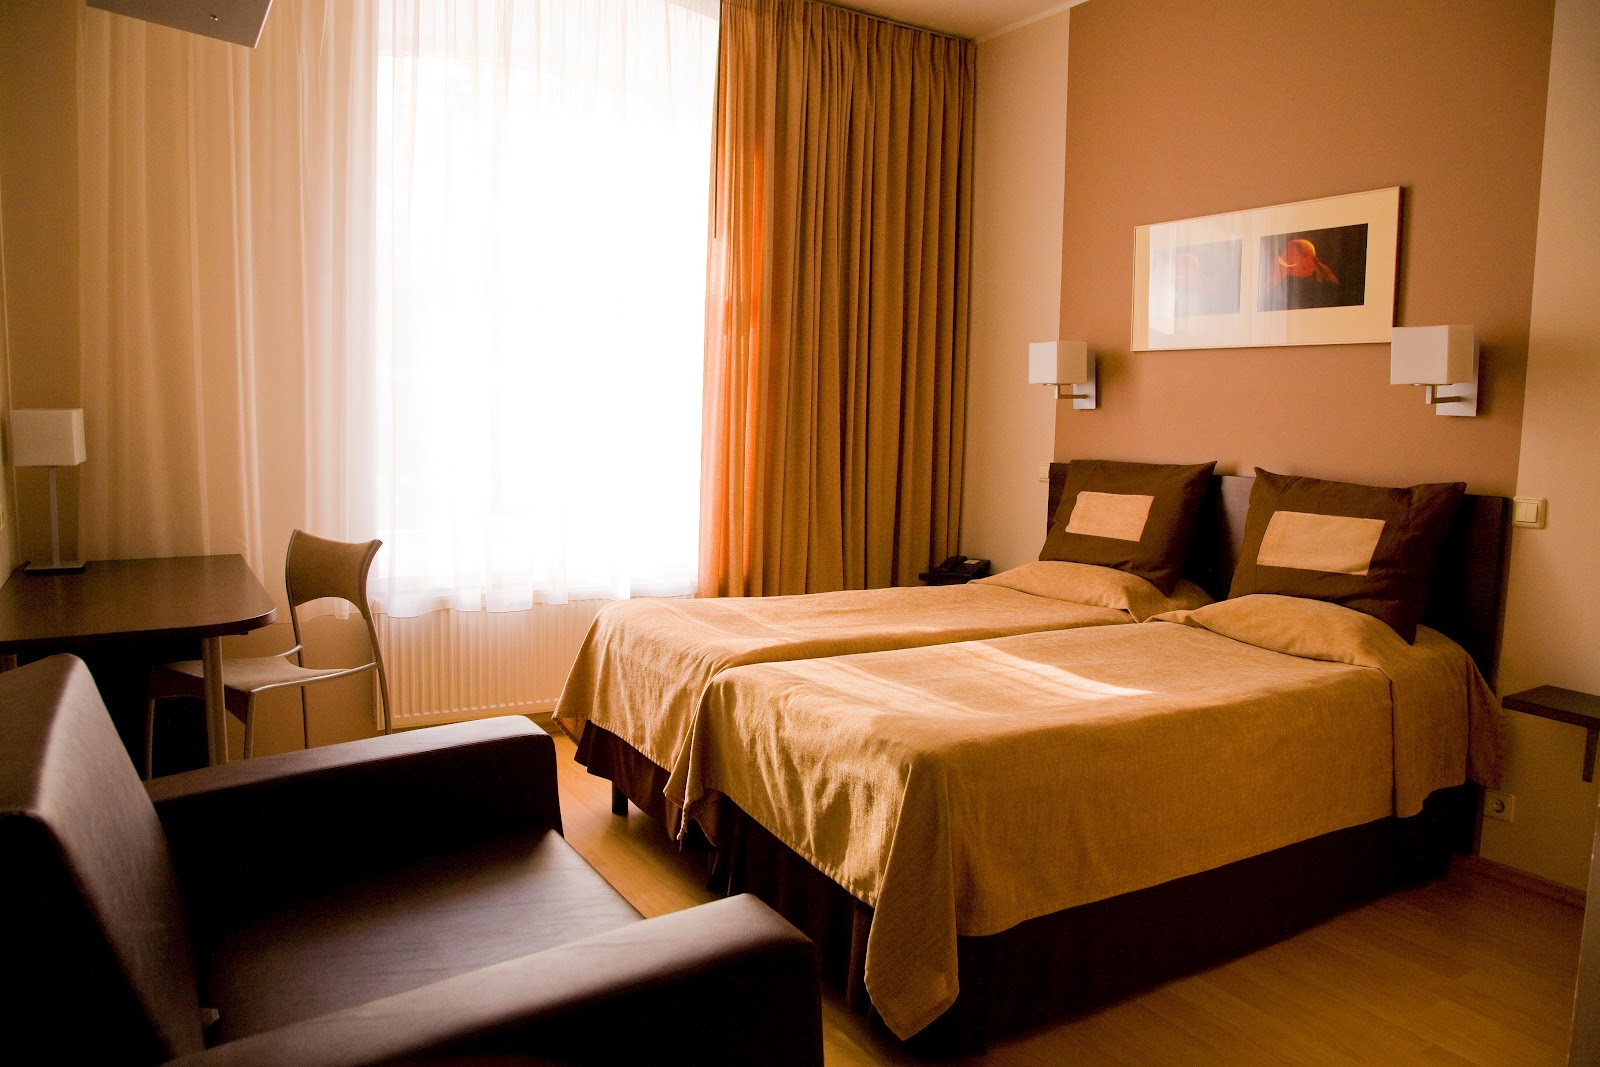 Delhi hotels blog for Cheap hotels